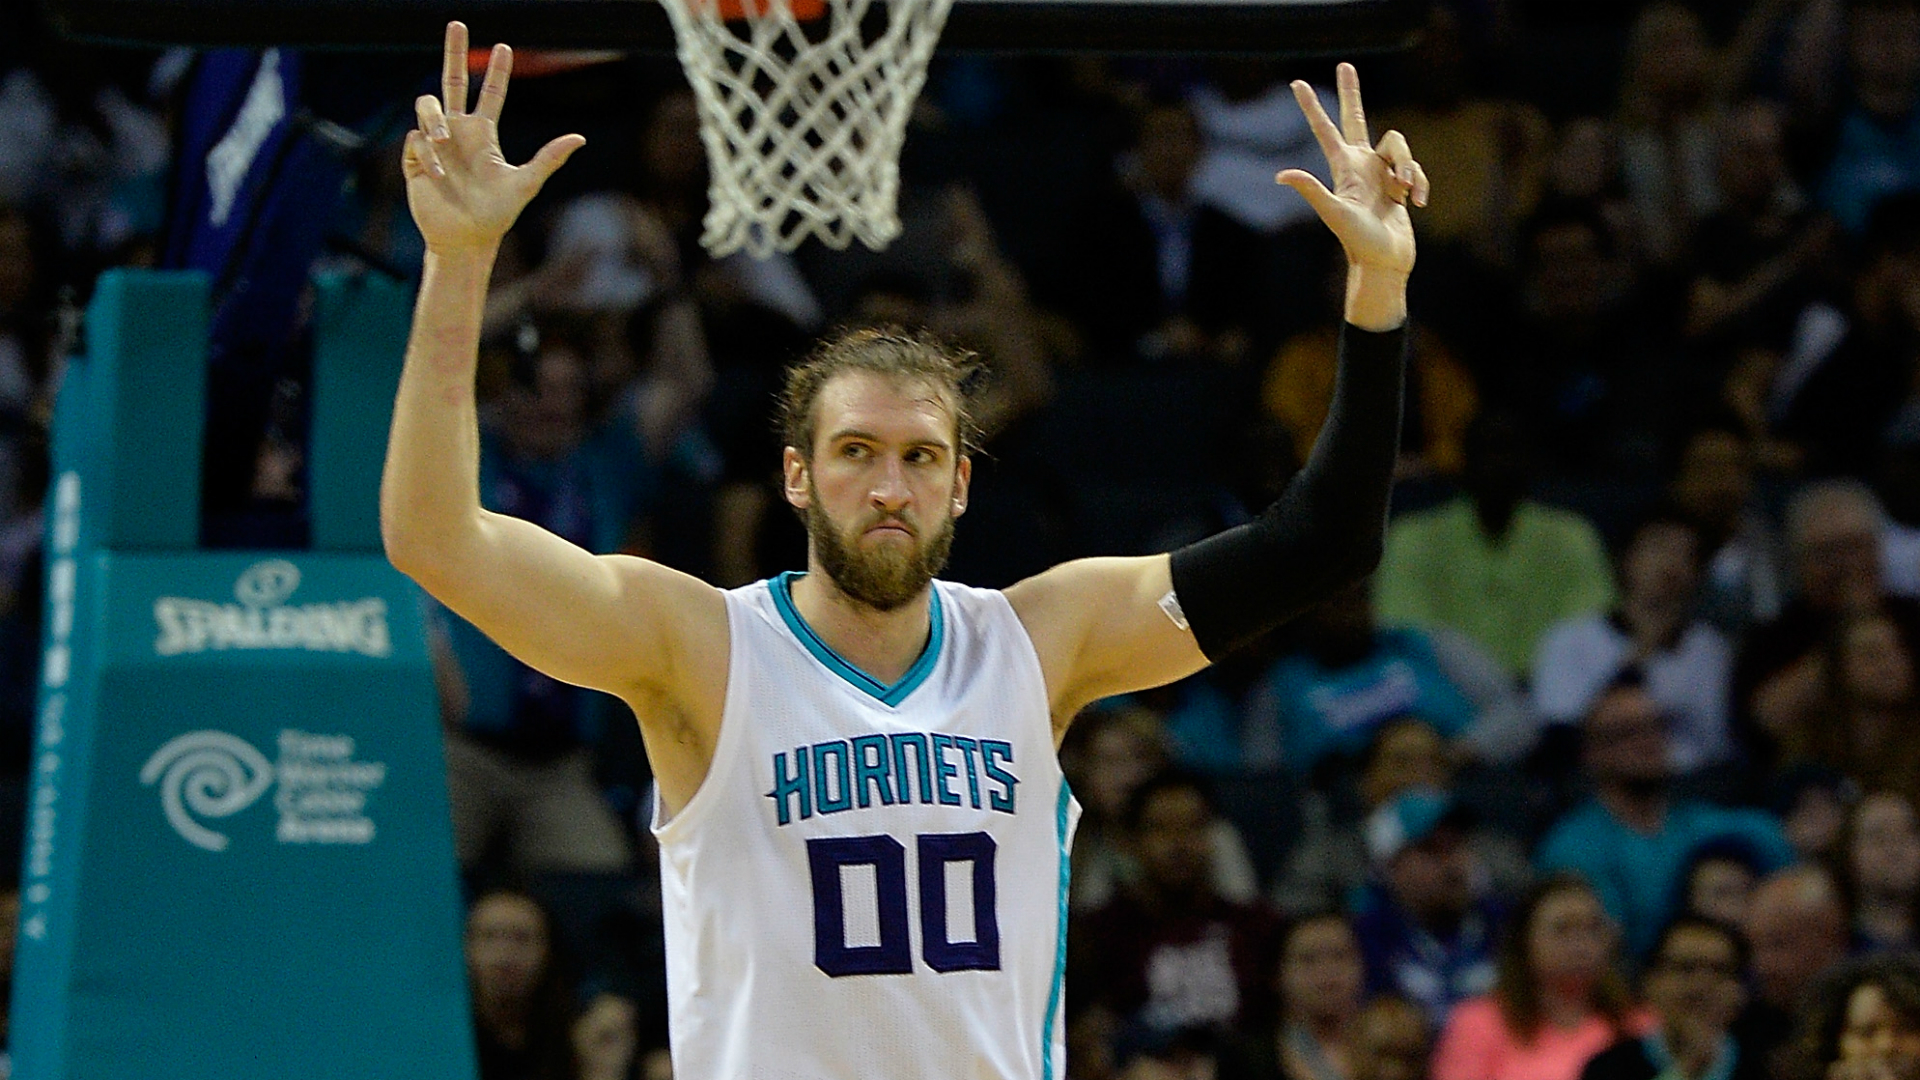 Spencer-hawes-getty-ftr-102416_rottcya39m9e1of9nkb2y2km1